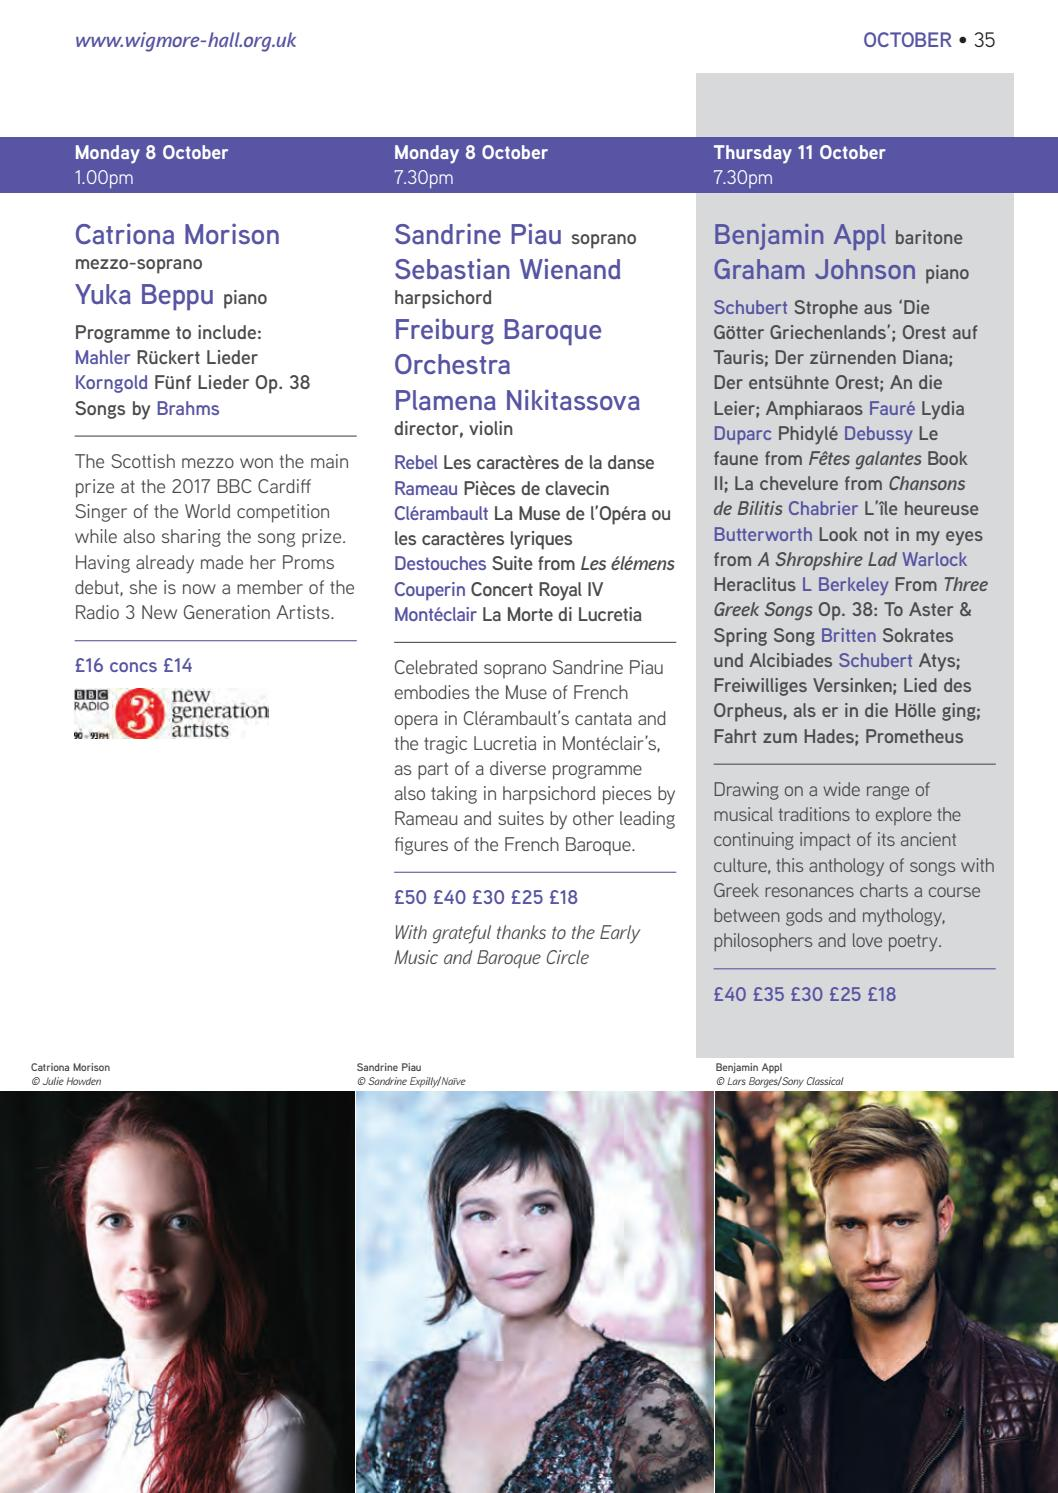 Autumn 2018 Wigmore Series by Wigmore Hall - issuu